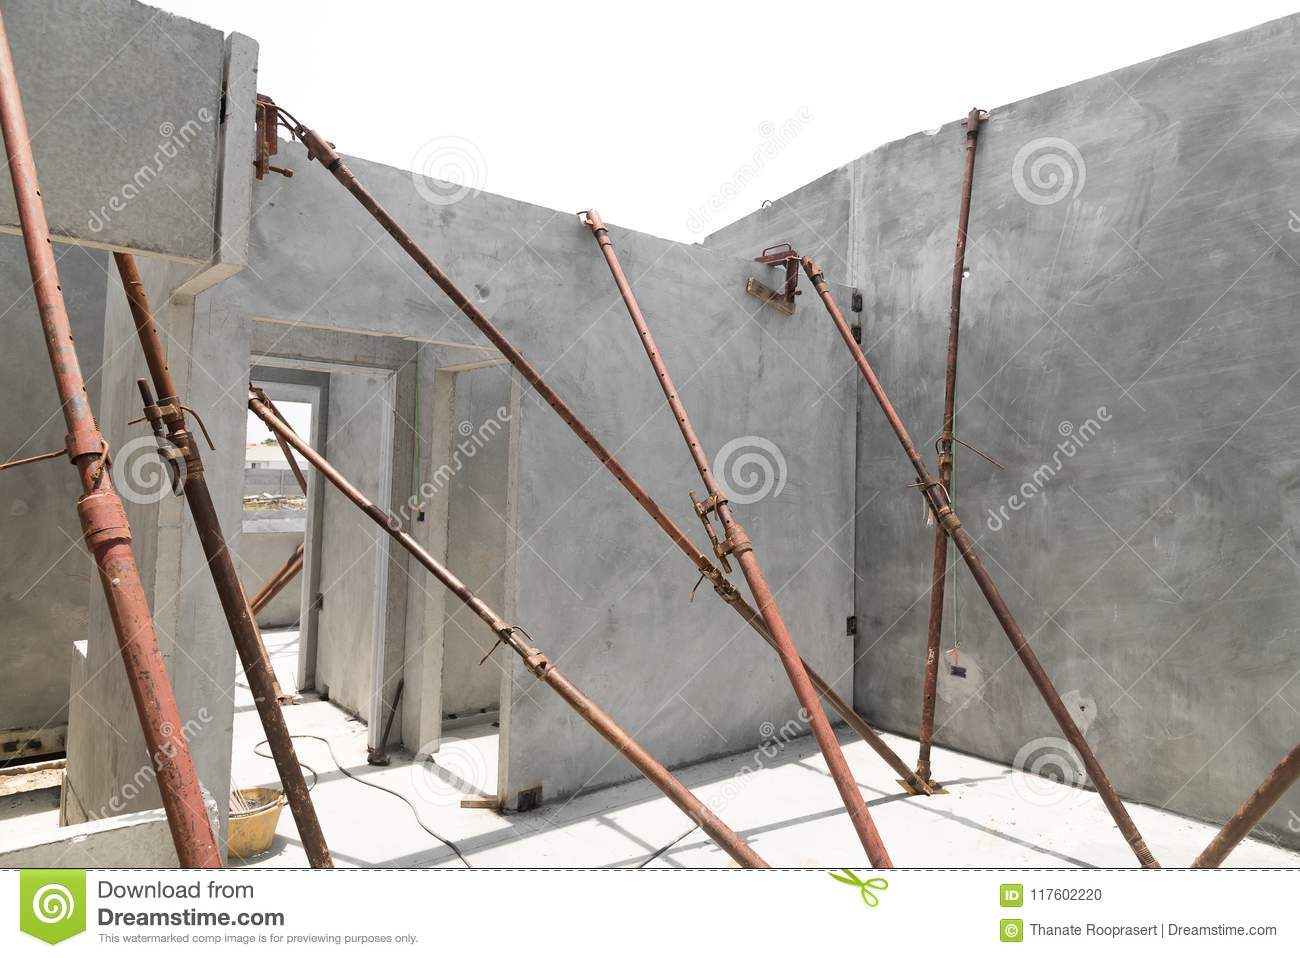 Installation Of Prefabricated Building Wall Panels Stock Photo Image Of Civil Activity 117602220